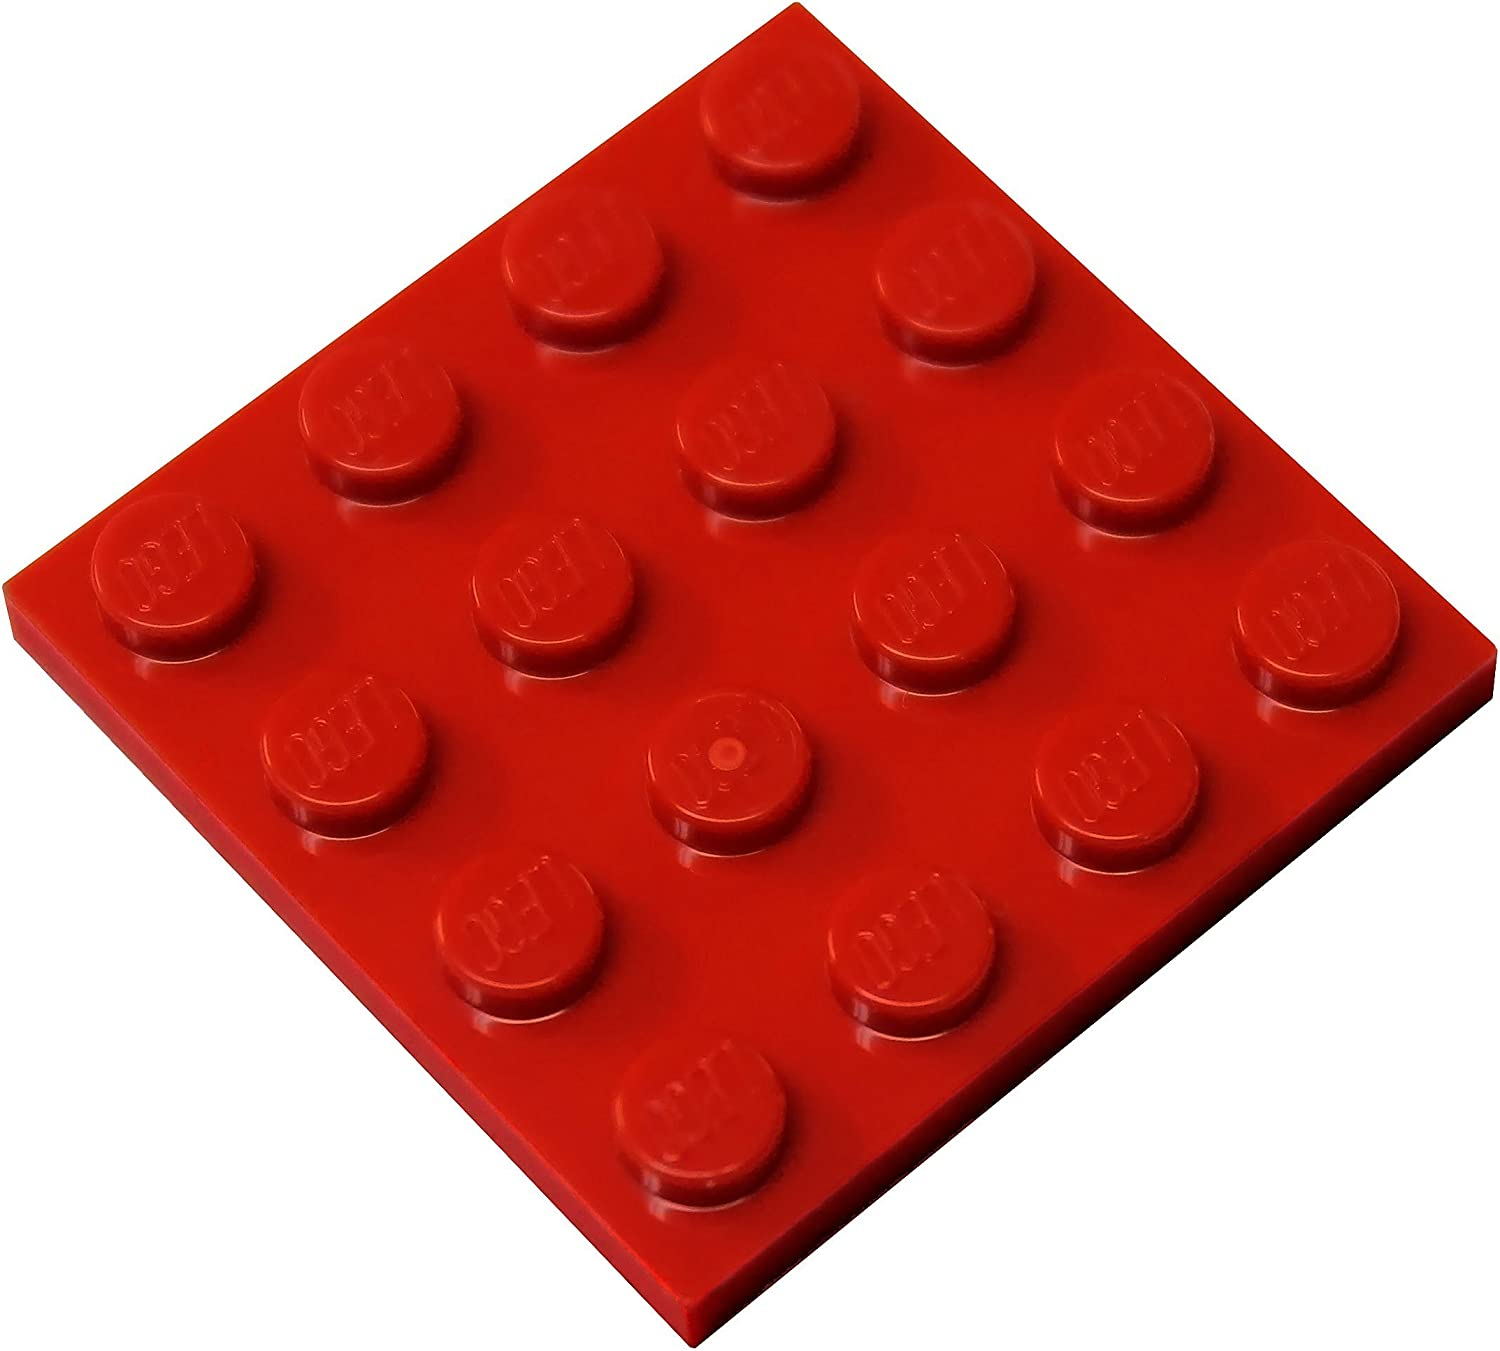 LEGO Parts and Pieces: Red (Bright Red) 4x4 Plate x10